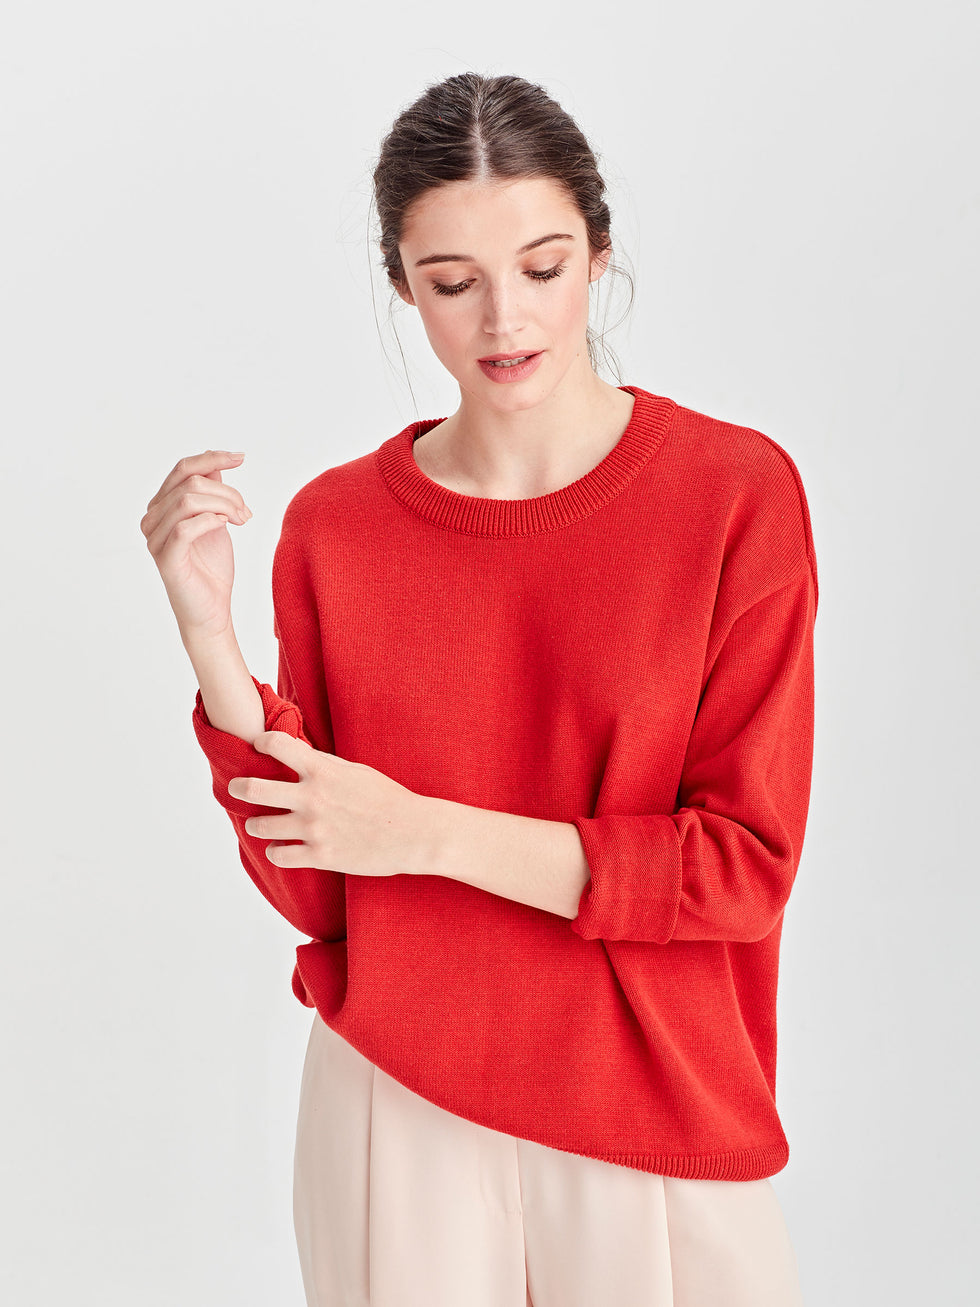 Cotton Sweatshirt (Cotton Knit) Cherry